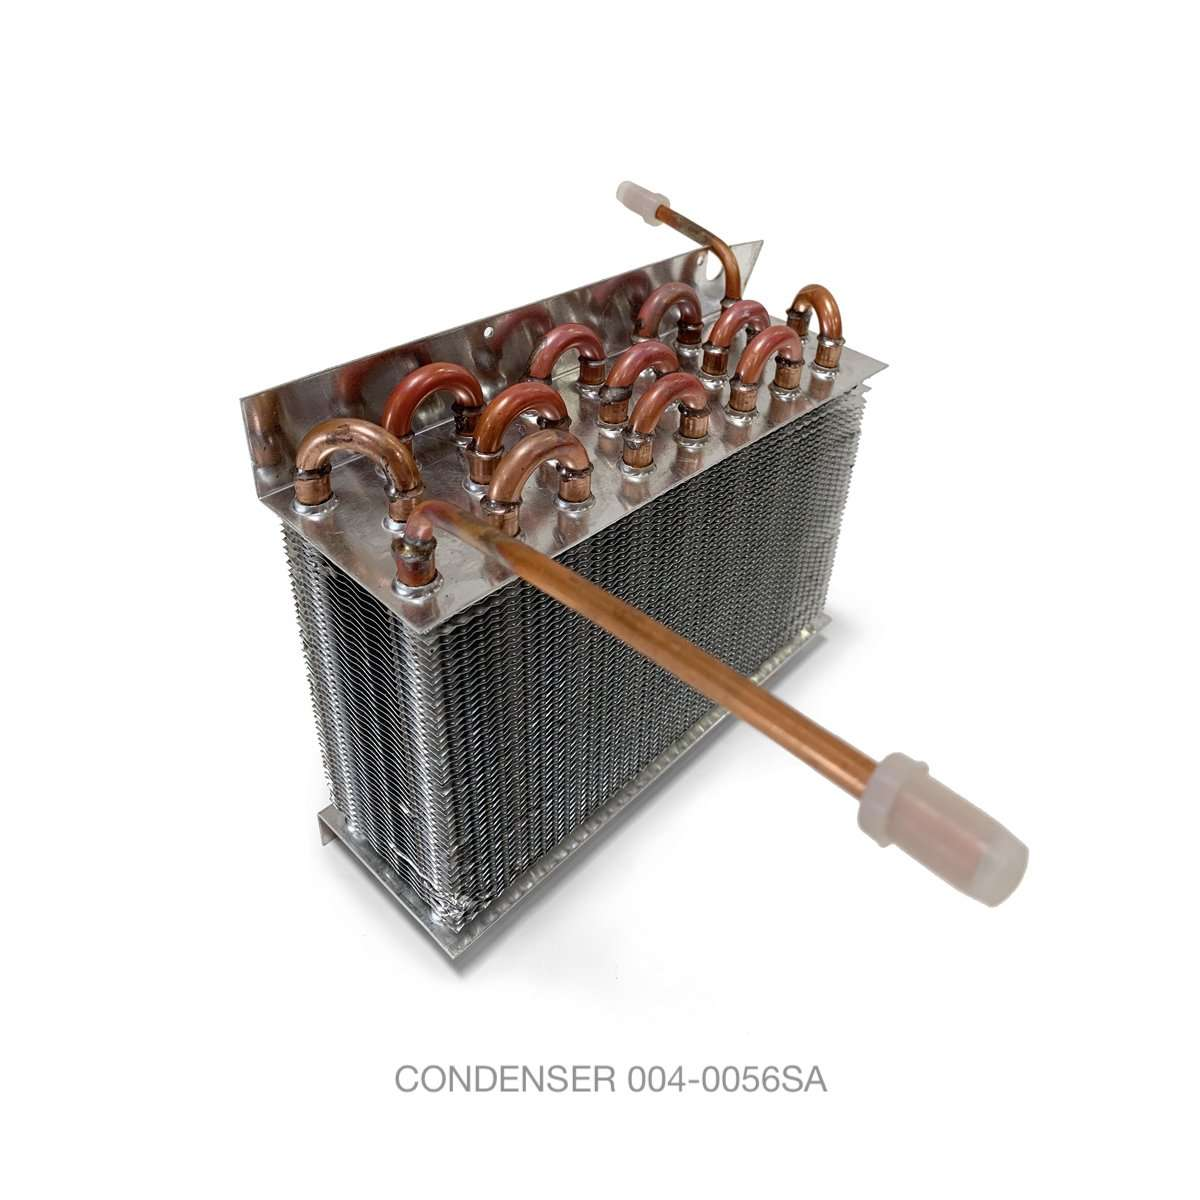 Condenser Coil for KingsBottle Wine and Beverage Cooler